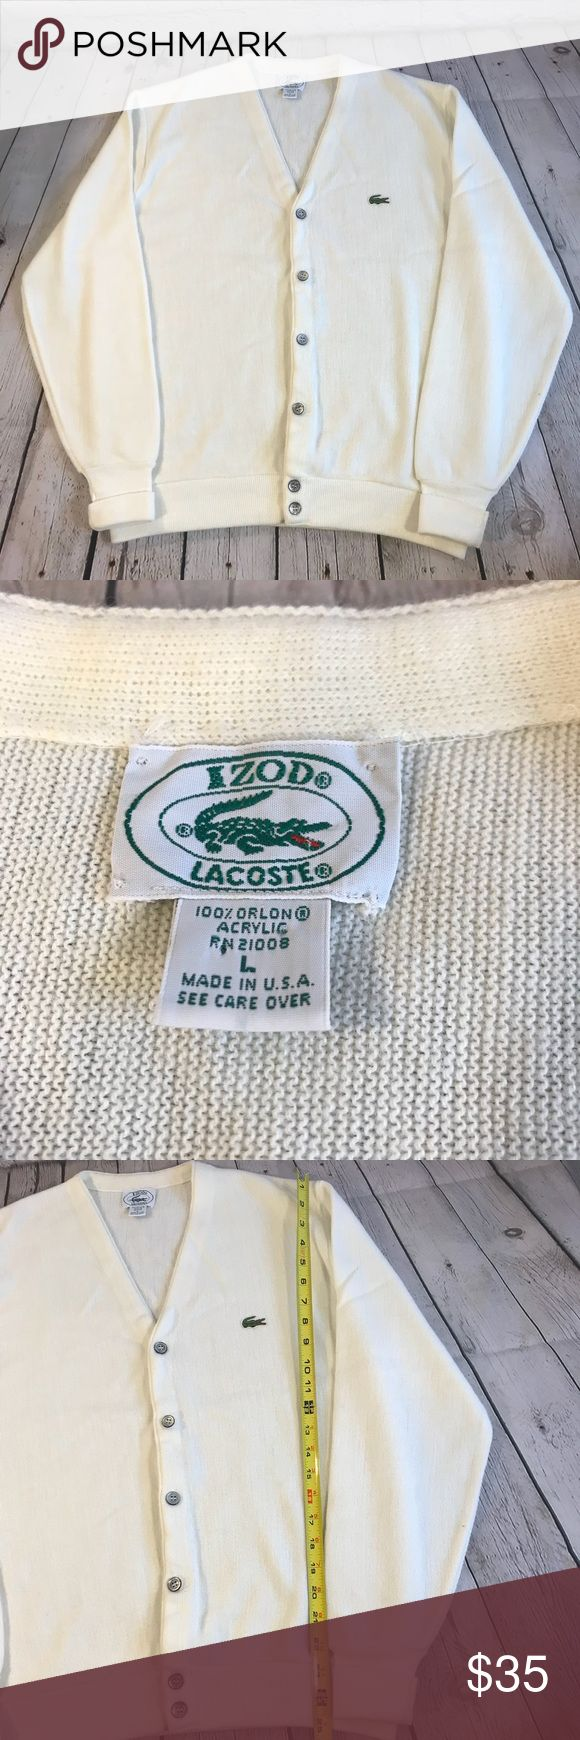 VTG Izod Lacoste Cardigan Men's Wool Sweater Large This is a vintage Izod Lacoste men's cardigan sweater size large. Color: cream Merino wool. No spots. See pics for measurements. Lacoste Sweaters Cardigan